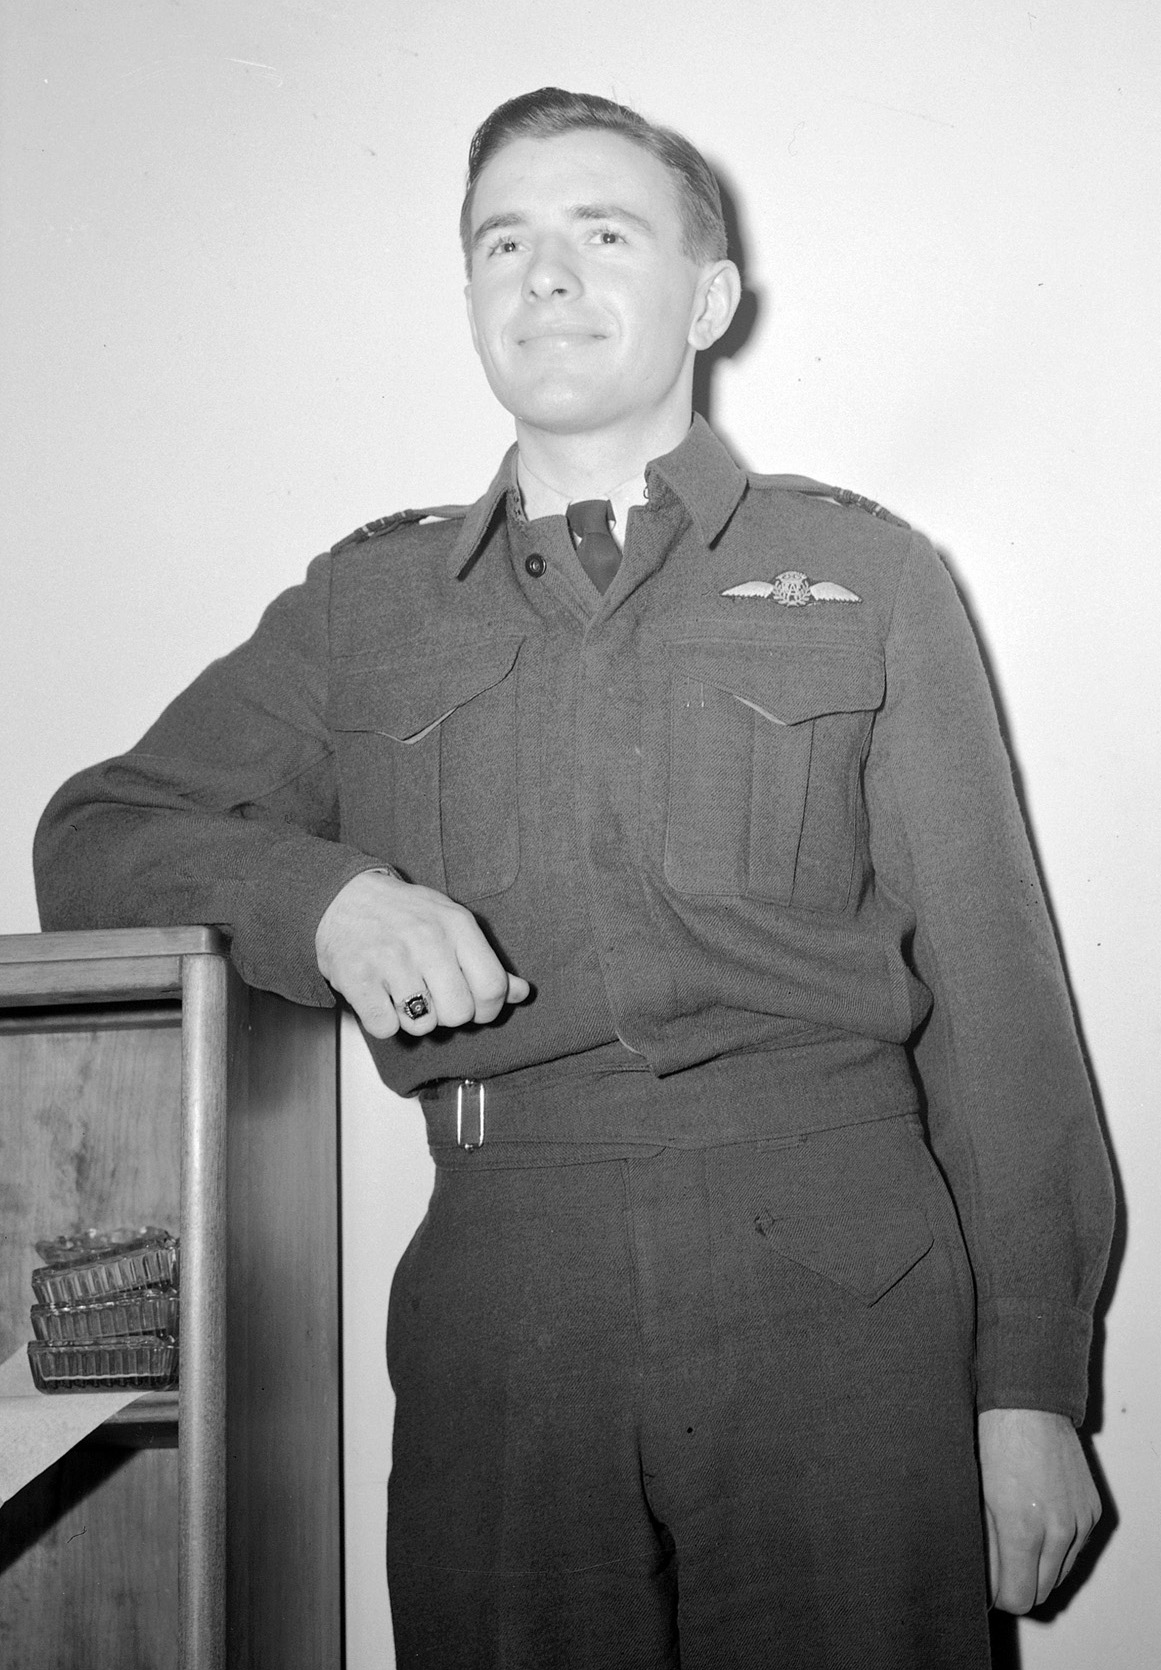 Squadron Leader Russ Bannock, of Edmonton, Alberta, in a February 29, 1944, photograph. PHOTO: DND Archives, PL-24137